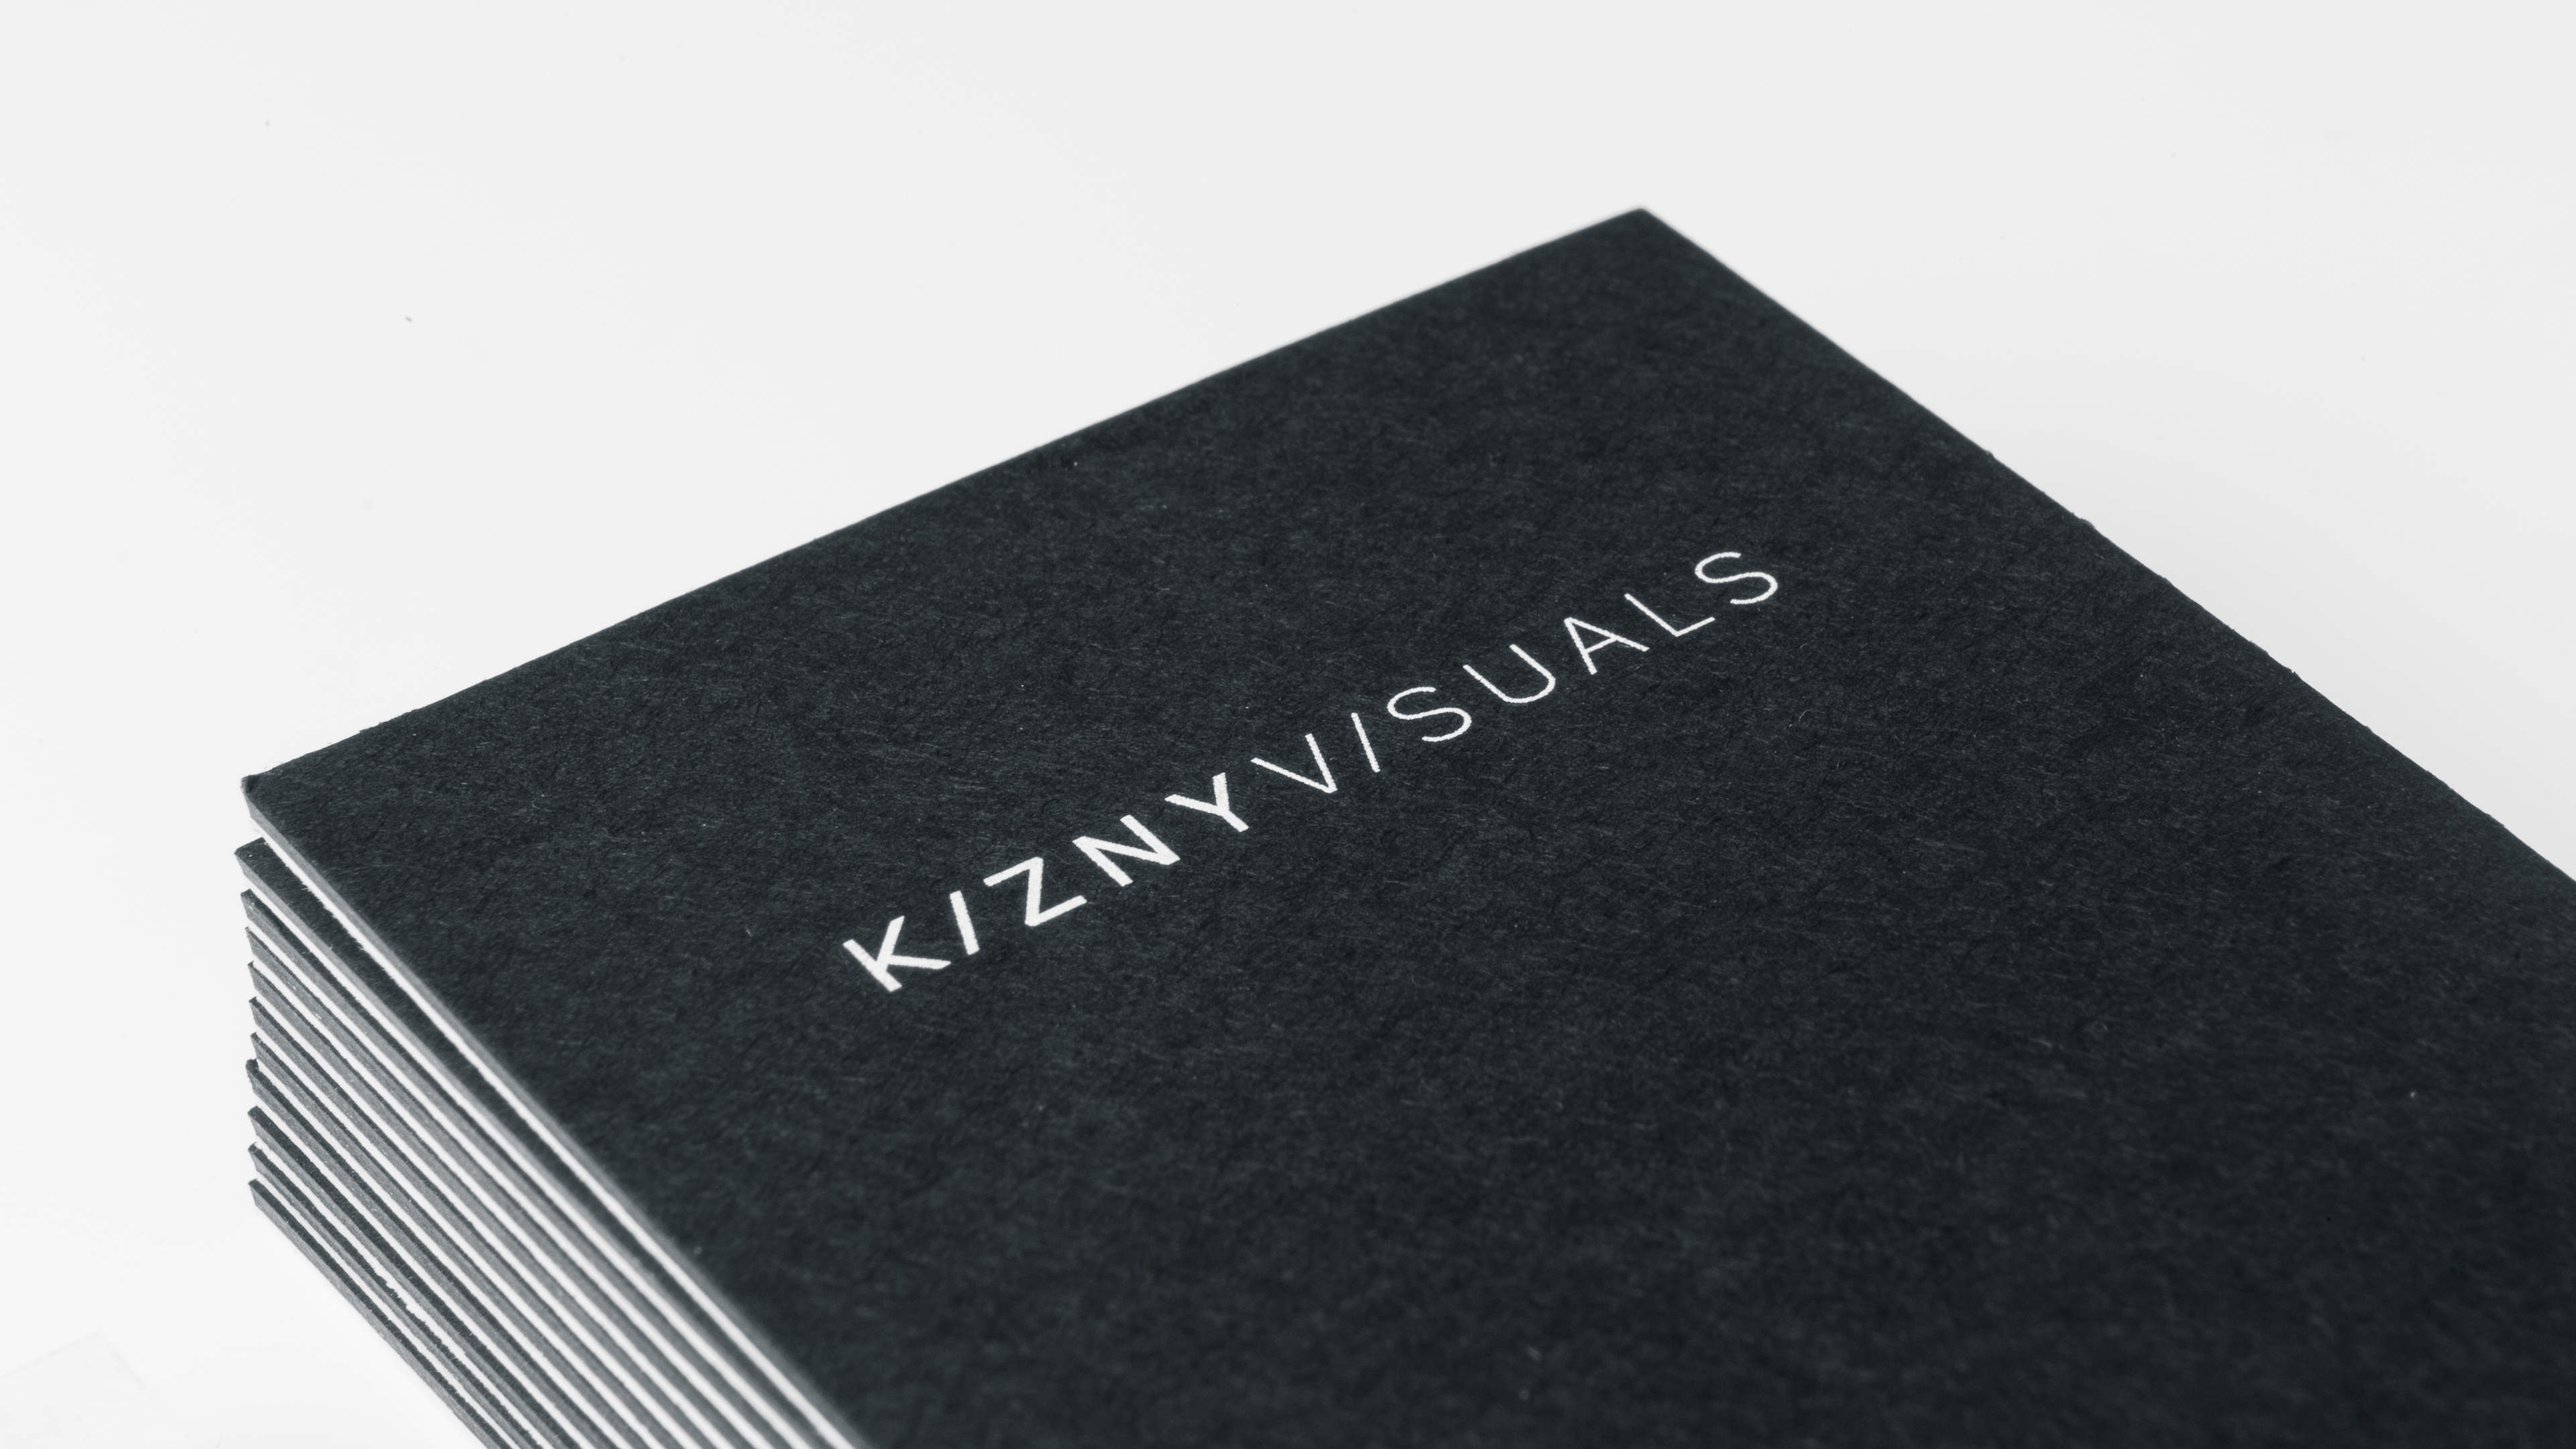 Patryk kizny visual director kizny visuals business cards kizny visuals is a creative imaging media production studio led by patryk kizny fusing emerging technologies with strong artistic vision to deliver reheart Images